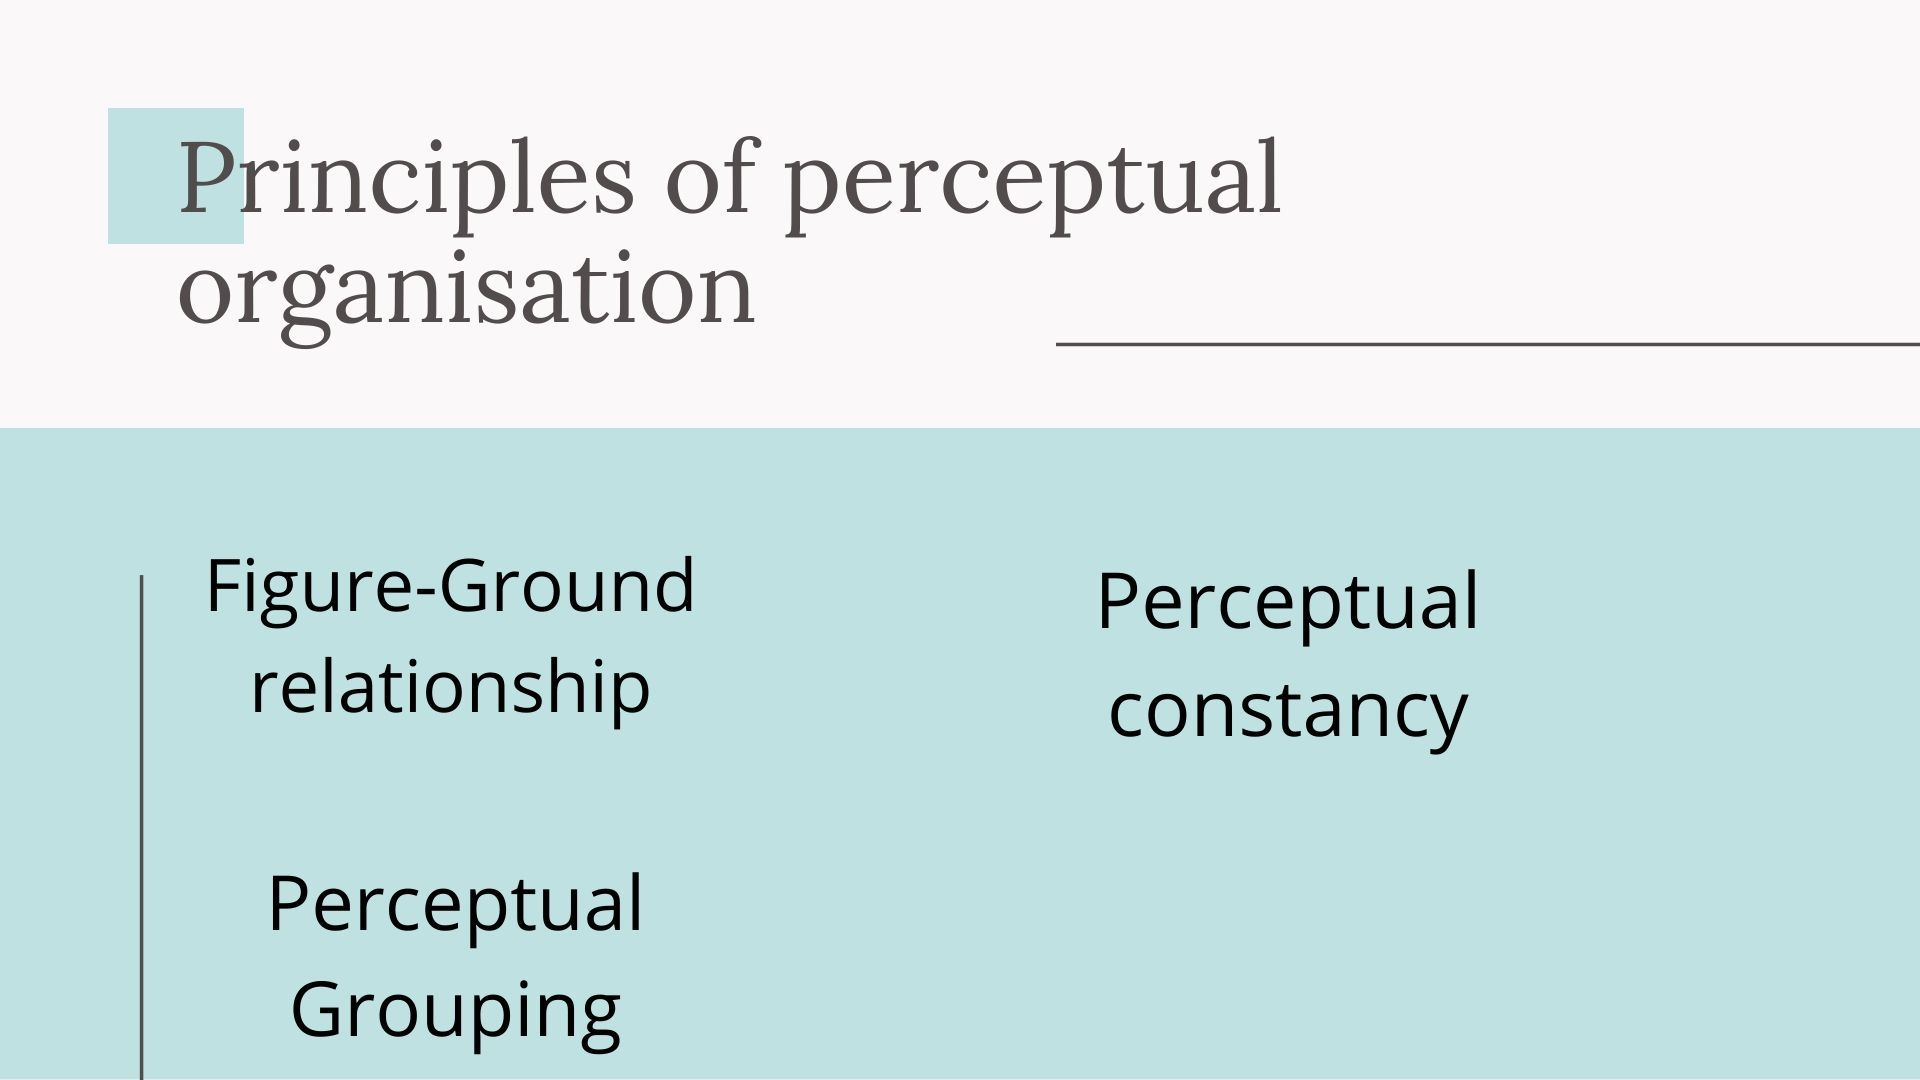 Principles of perceptual organisation